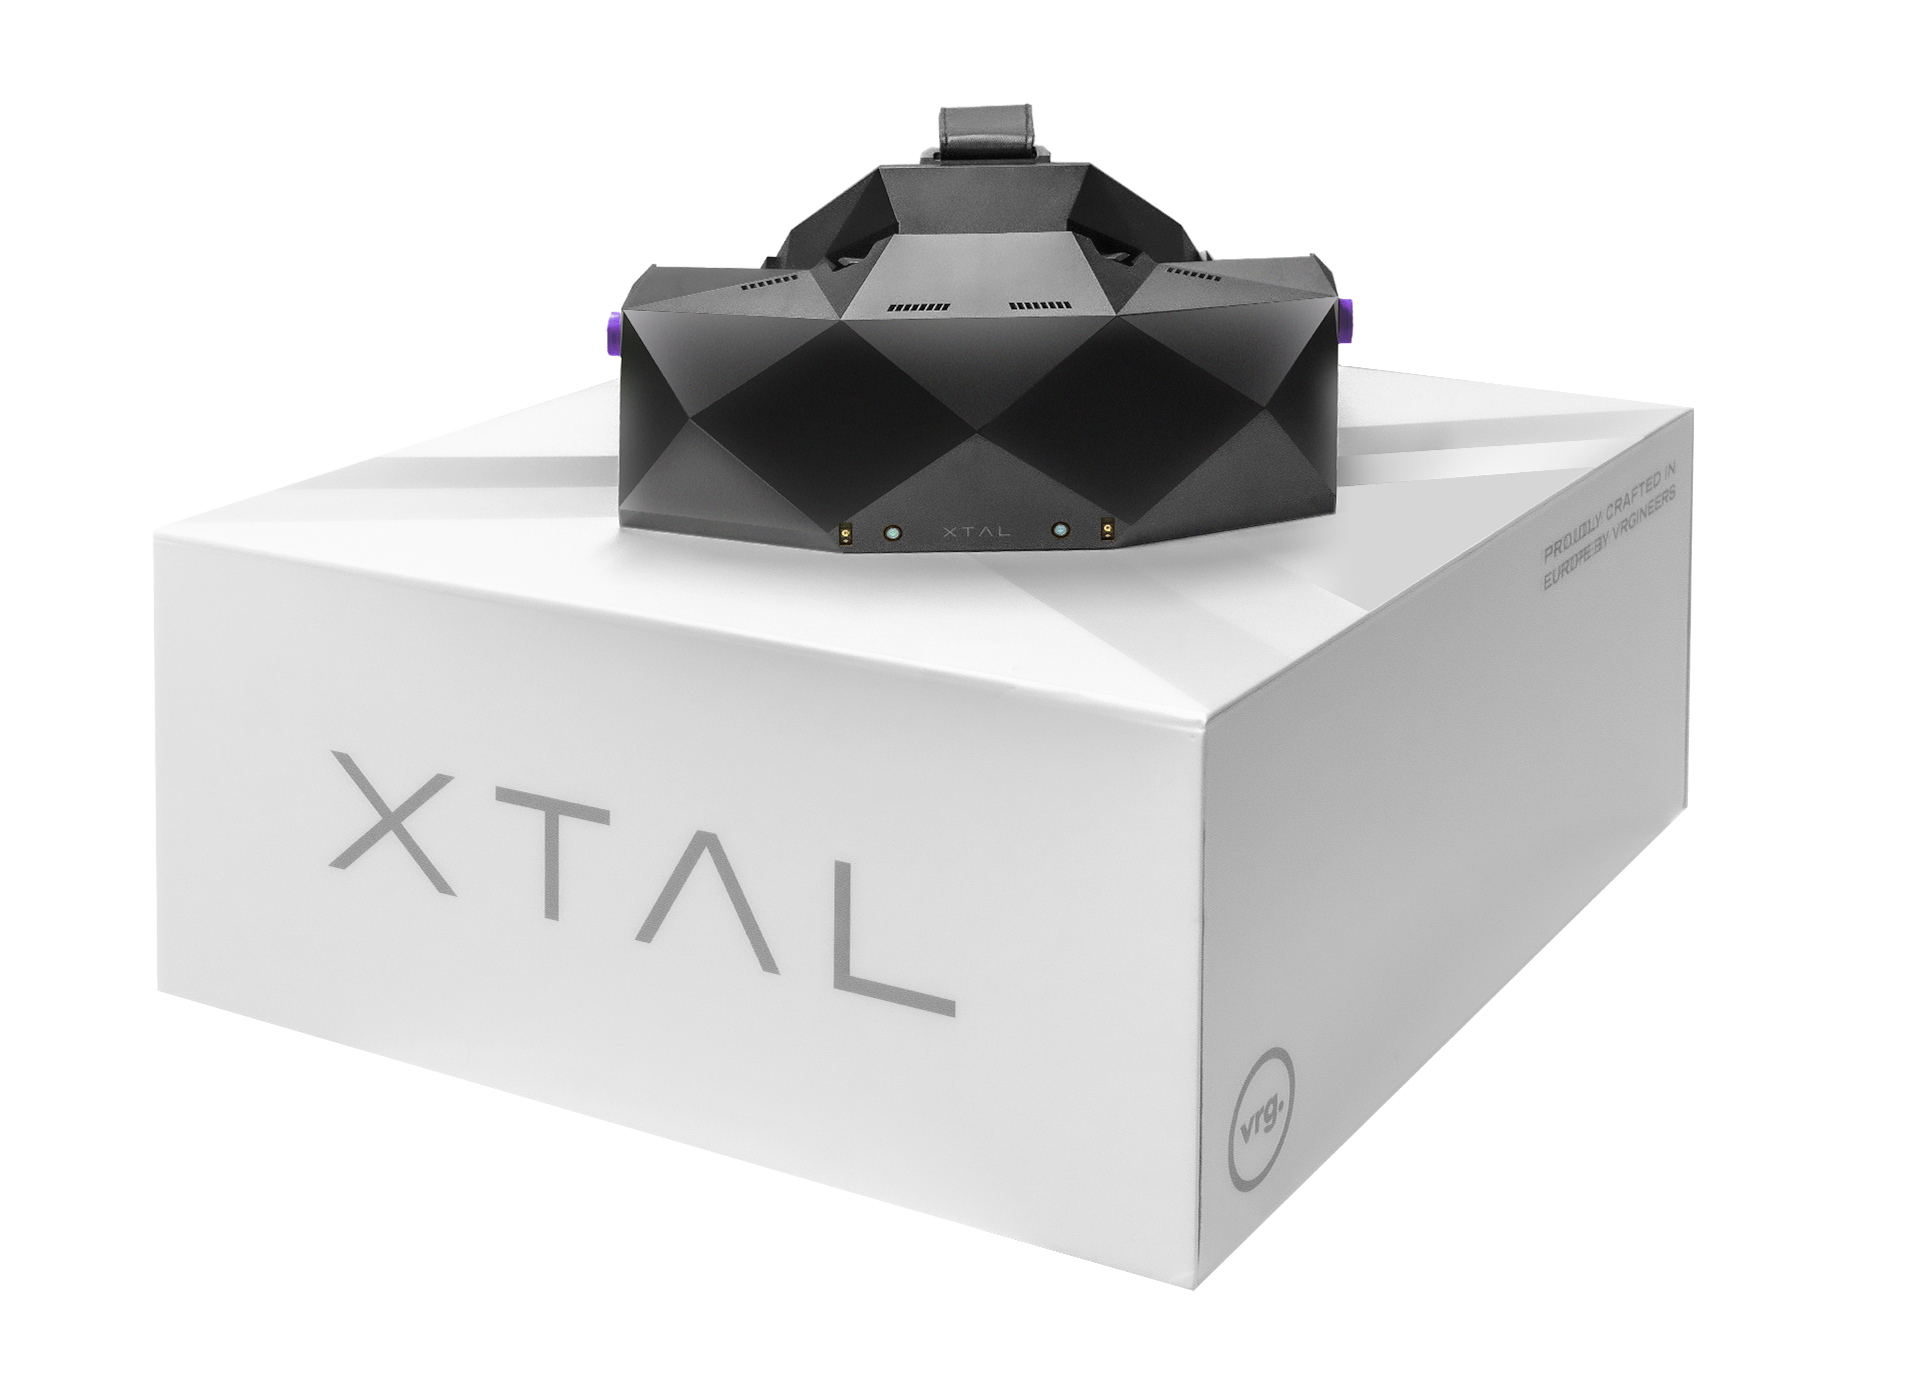 XTAL 8K professional VR headset product packaging